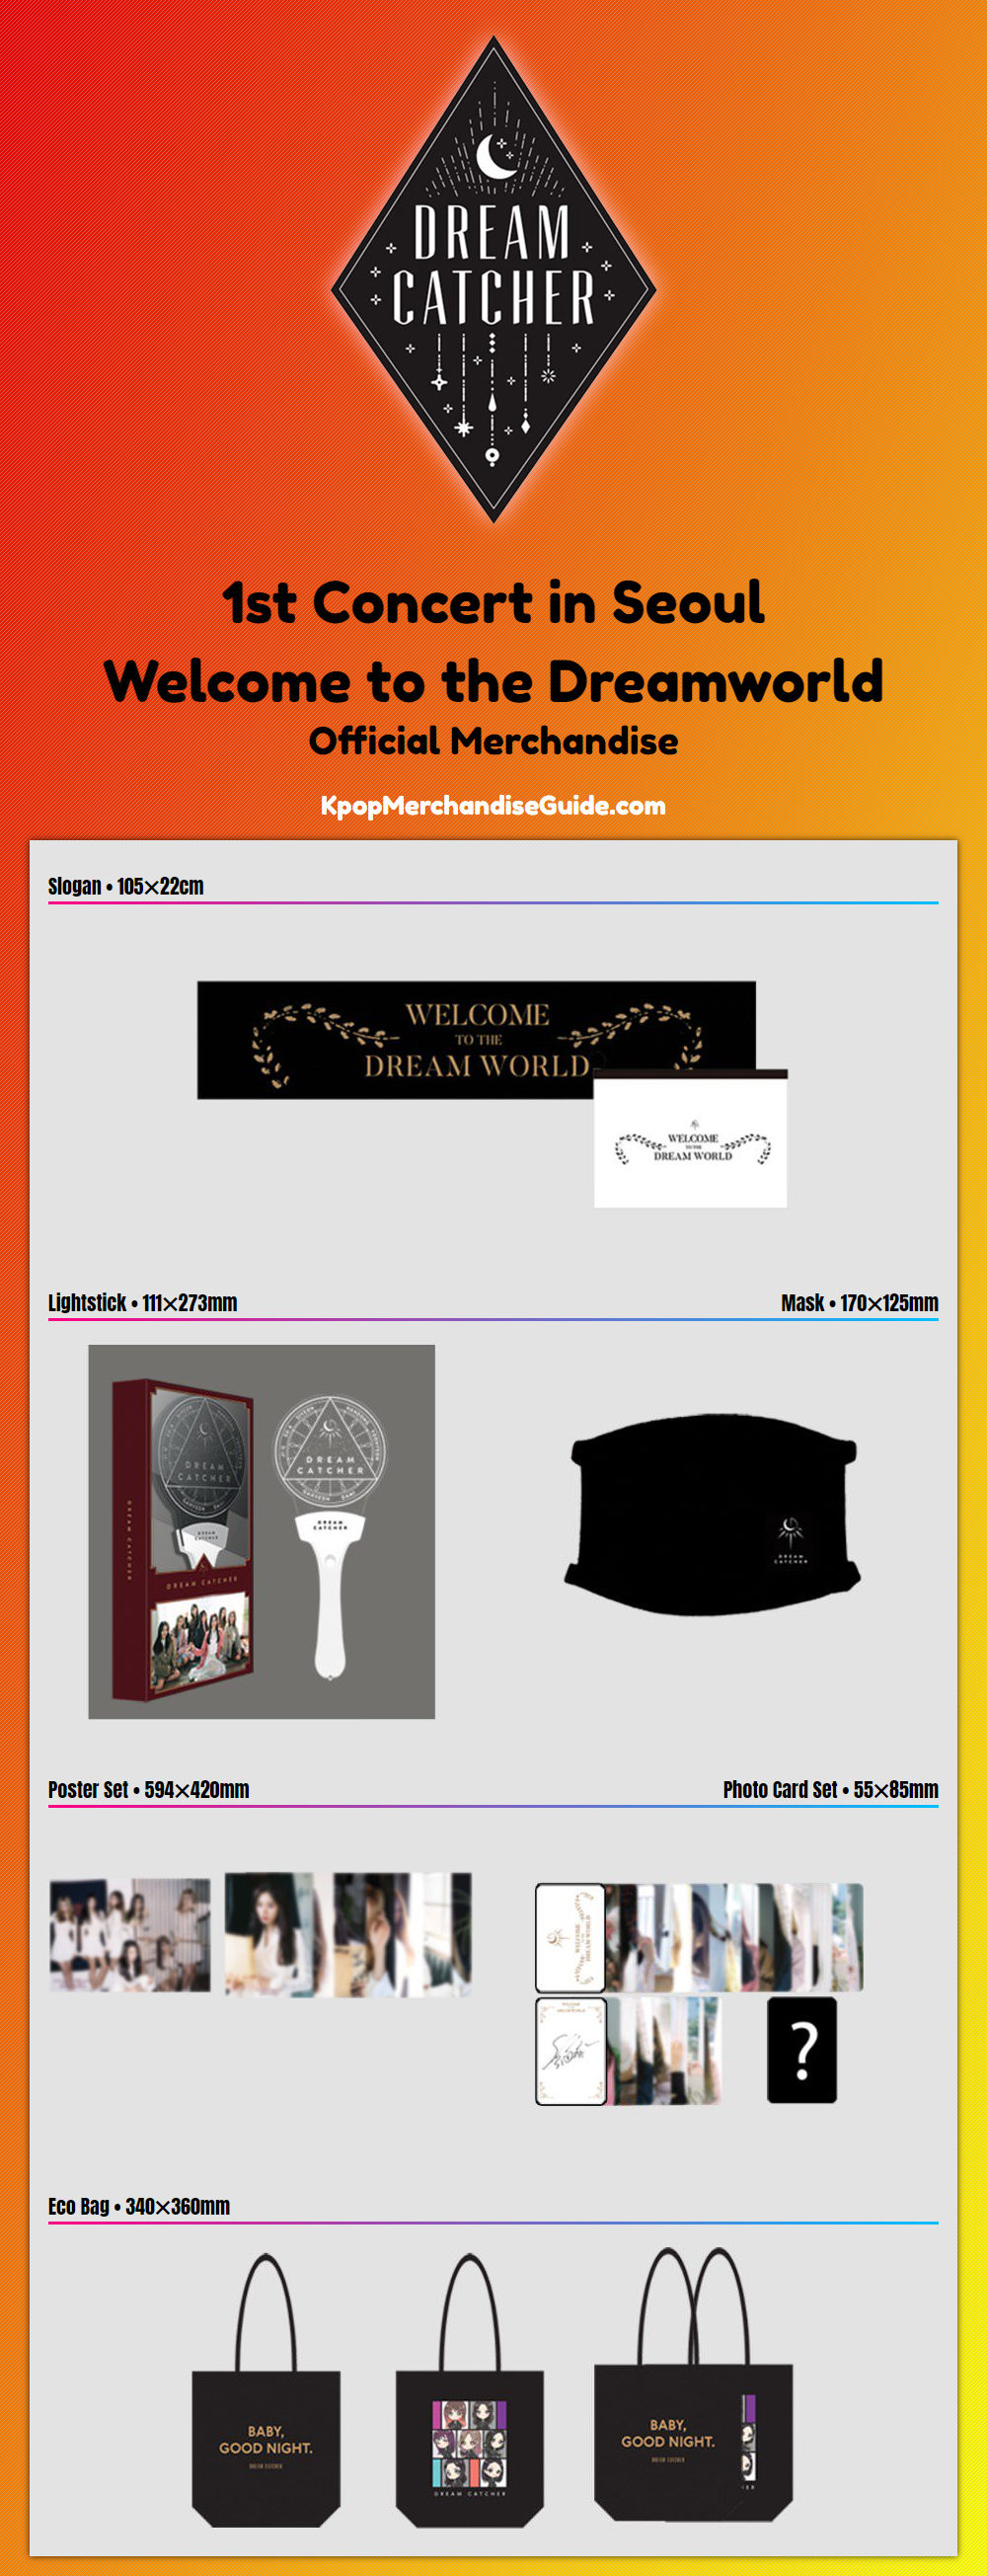 Dreamcatcher 1st Concert in Seoul Welcome to the Dreamworld Merchandise